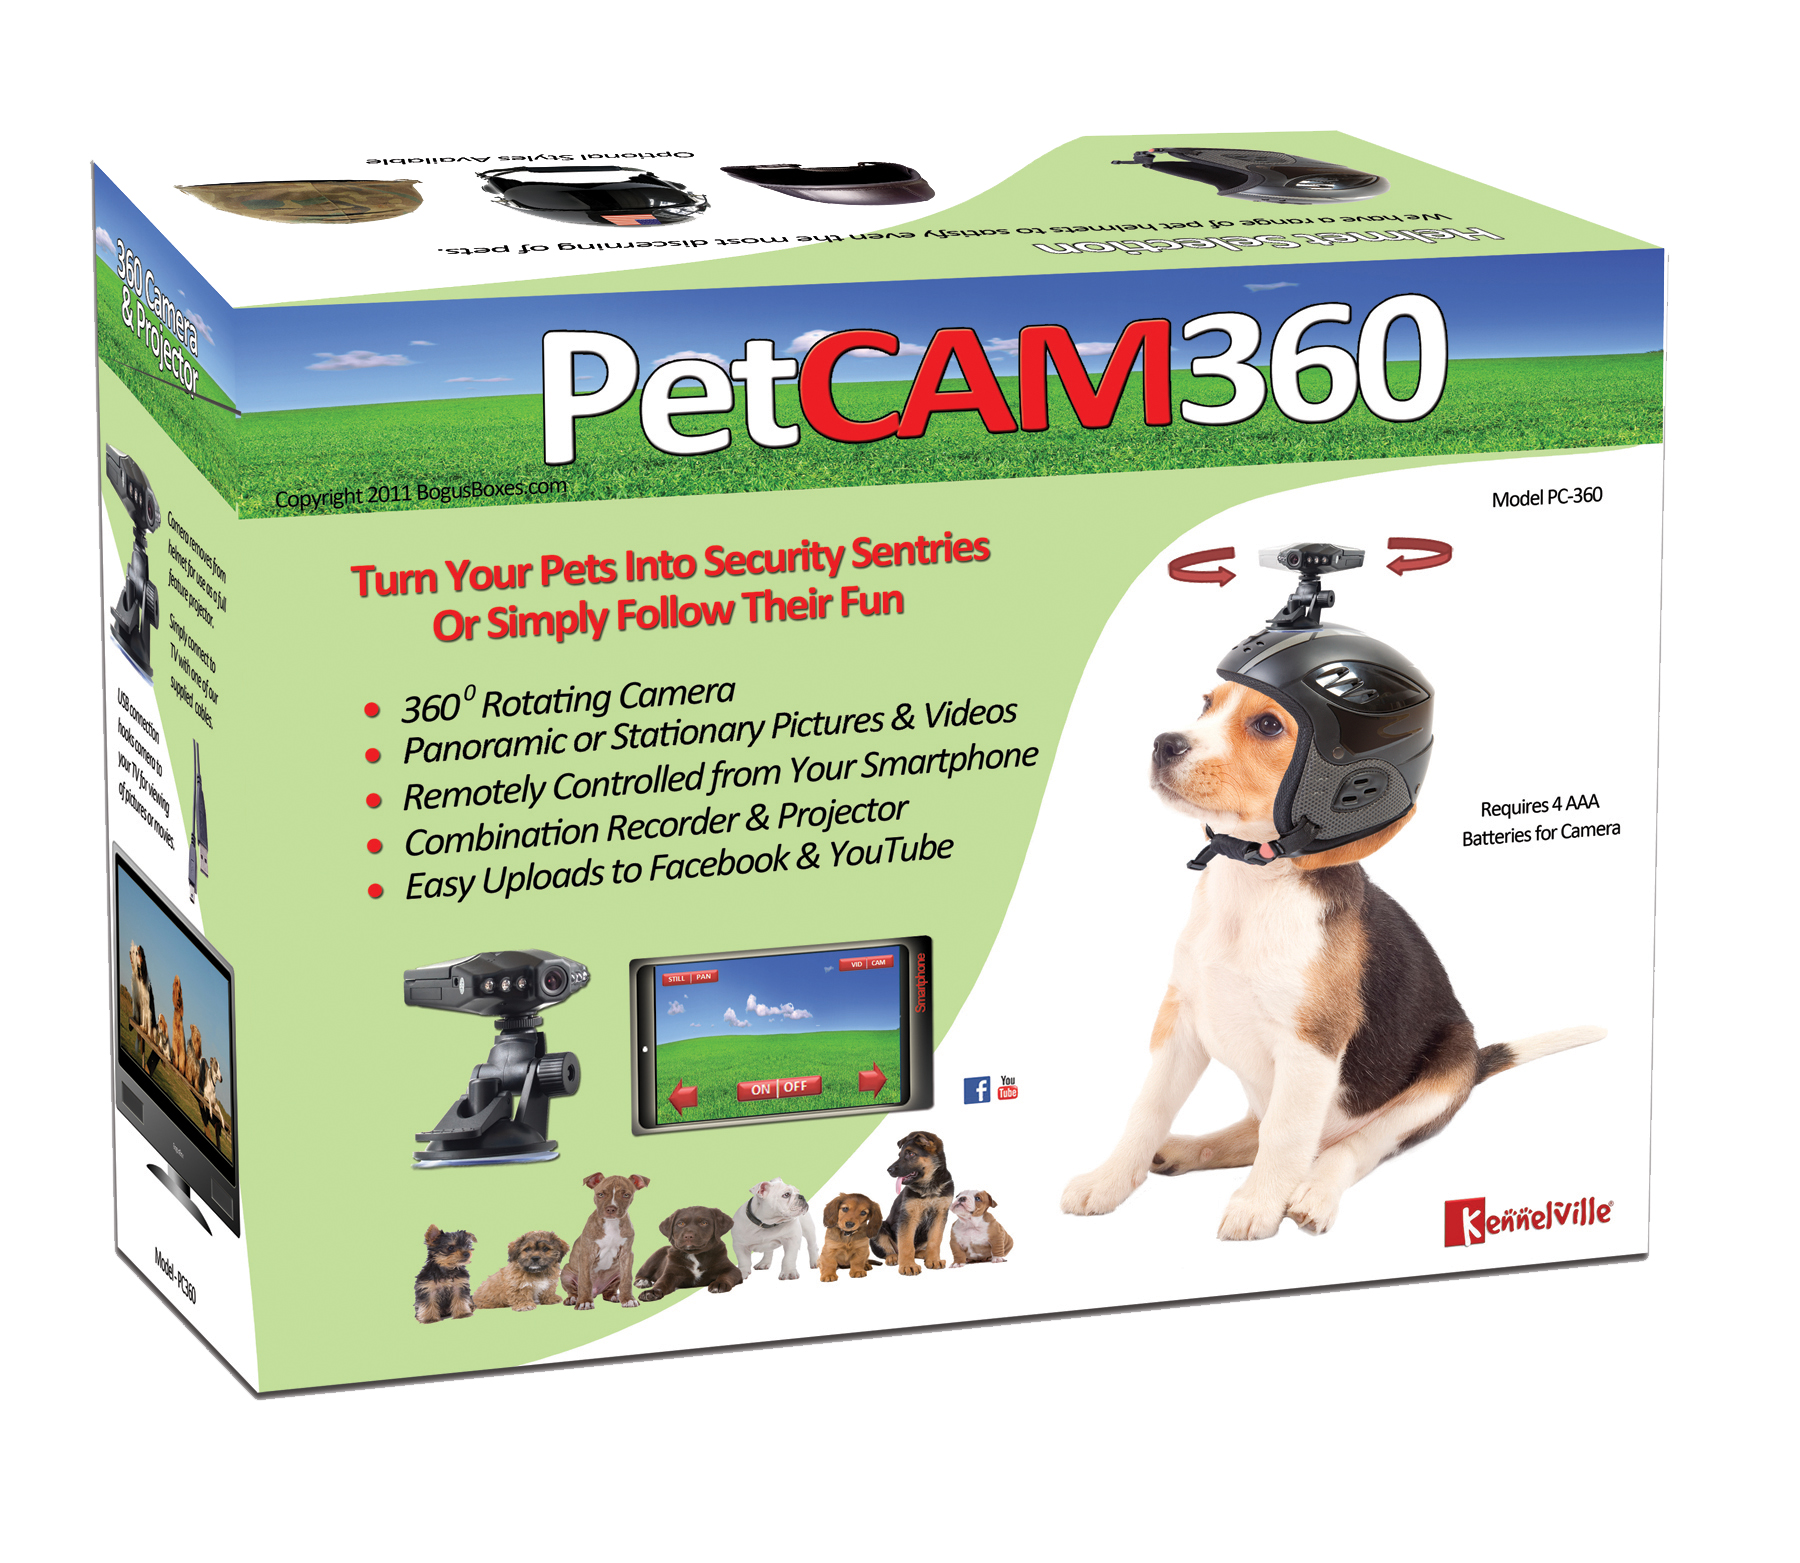 Petcam360 Gag Gift Box Turns Pets Into Security Sentinels